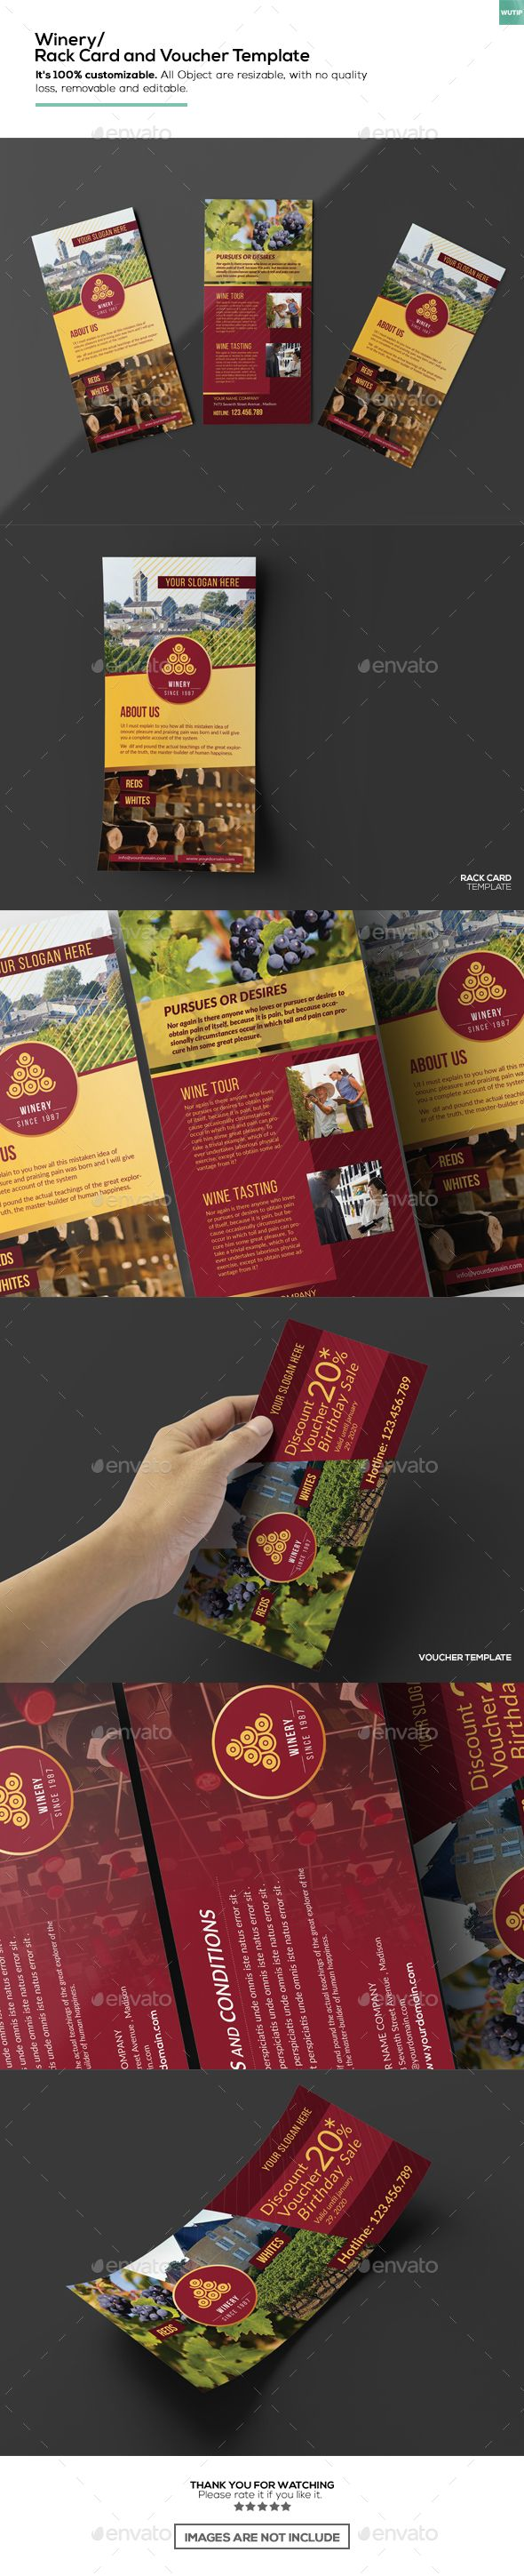 winery rack card and voucher template